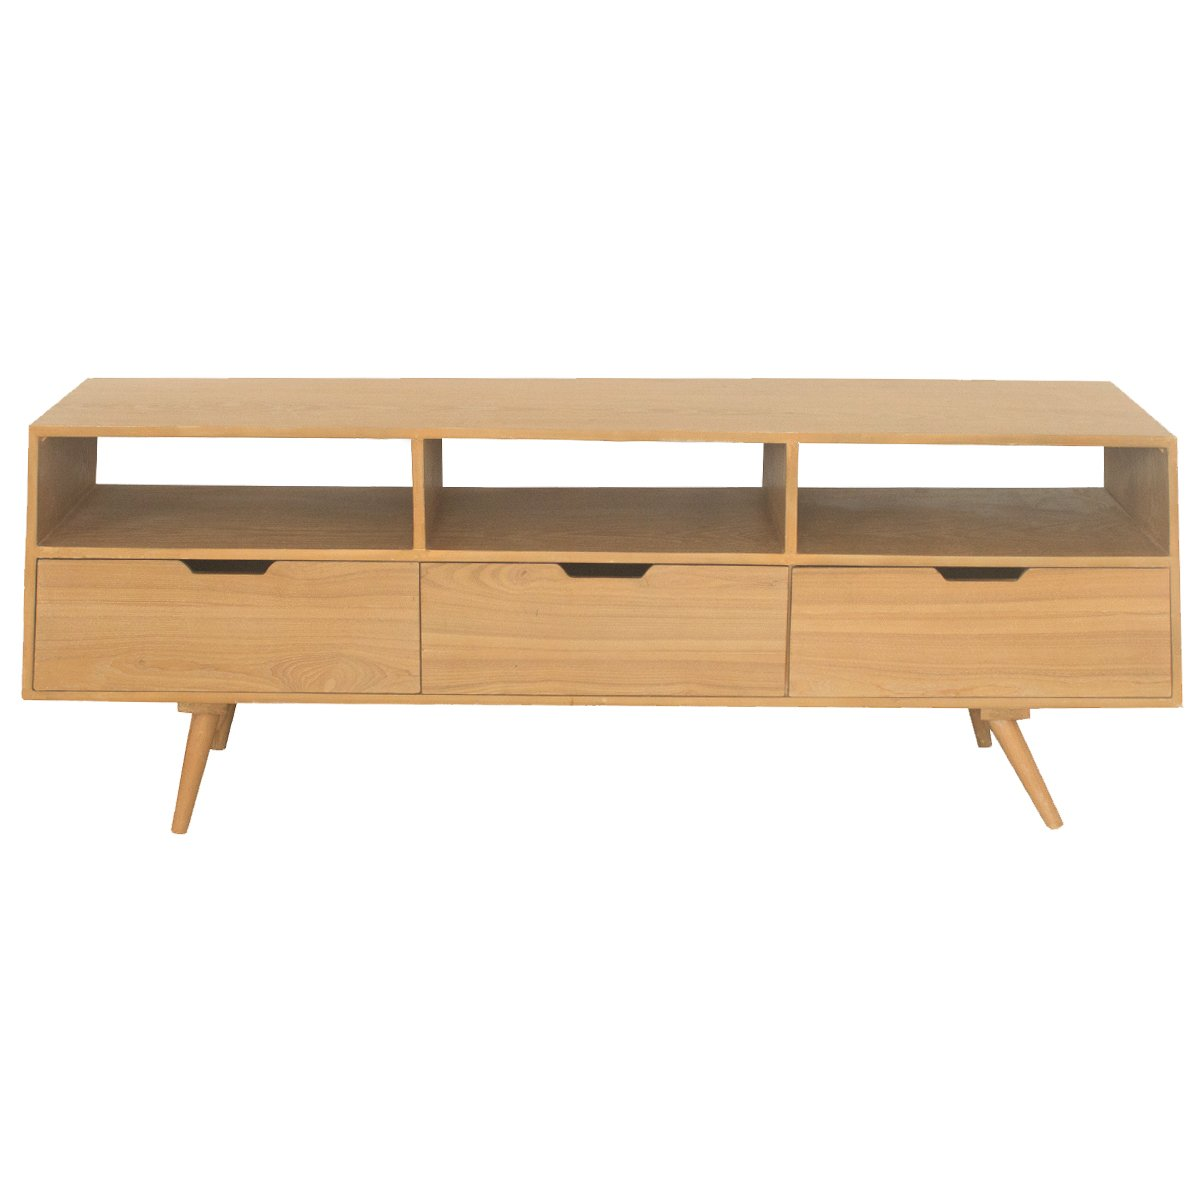 Retro Tv Units Uk Part - 33: SPECIAL OFFER LIMITED QUANTITY Charles Bentley Home Skandi TV Cabinet  Storage Wooden Flat Packed Table TV